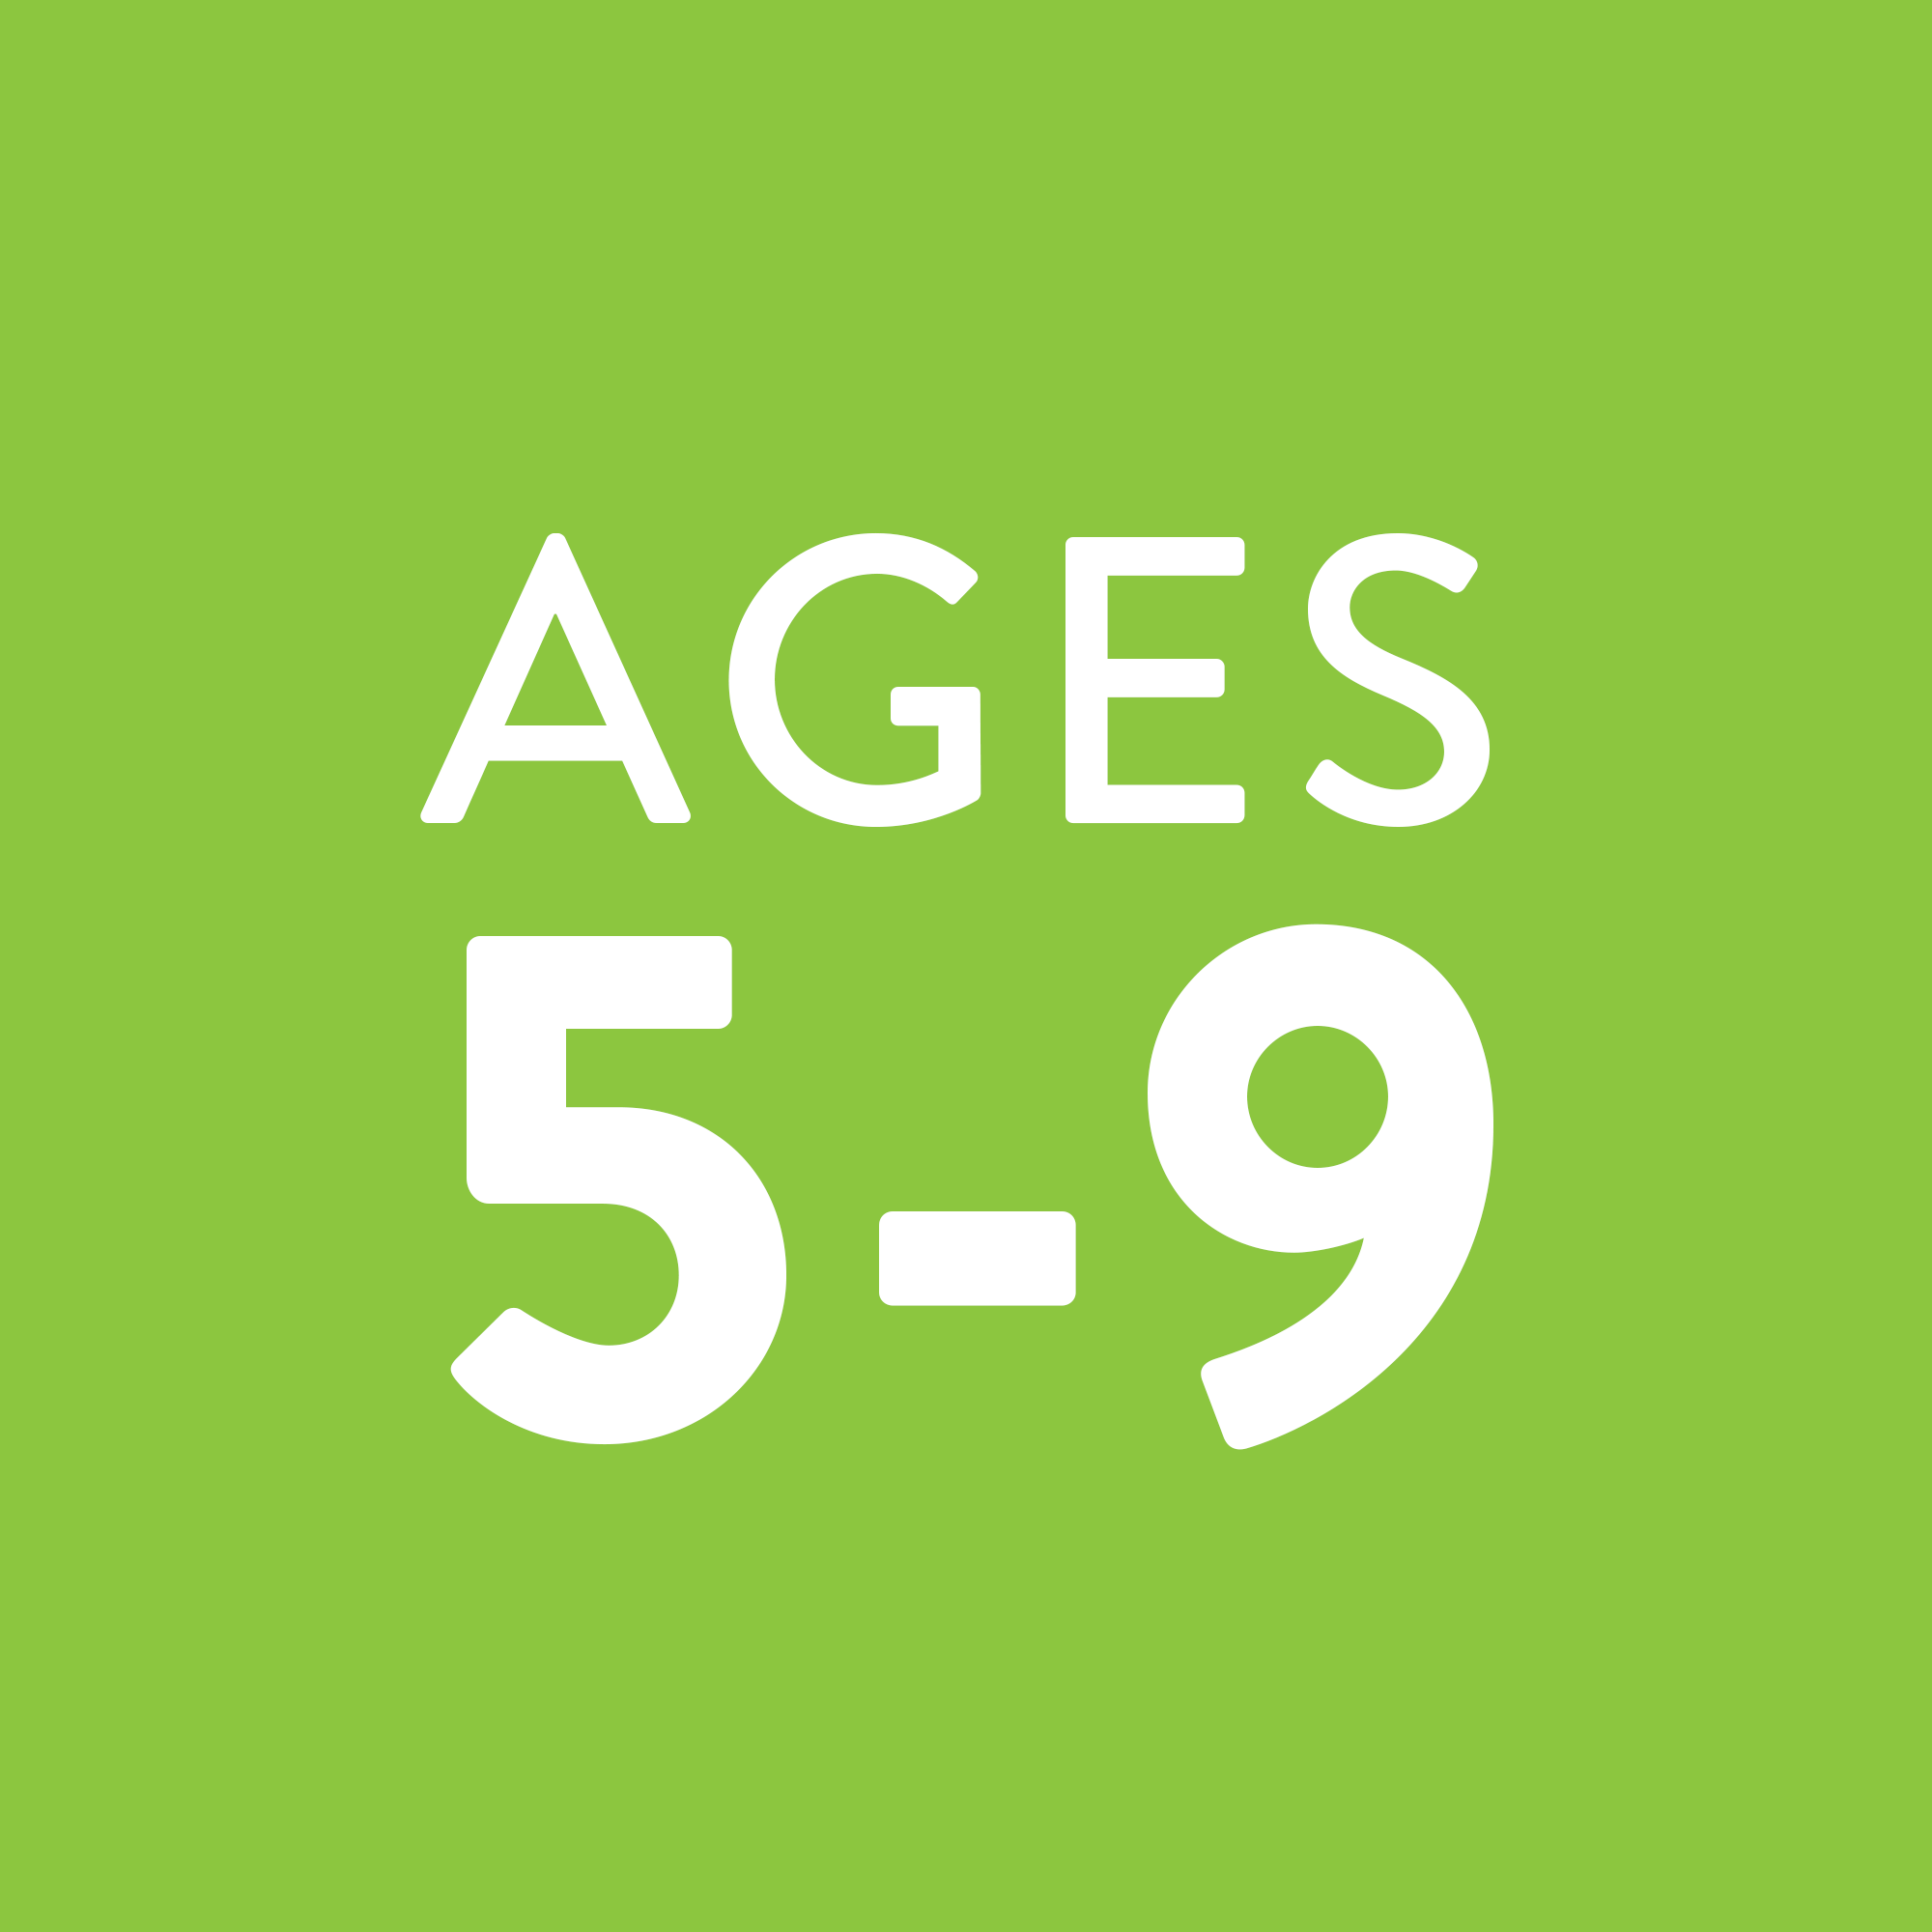 Ages 5-9